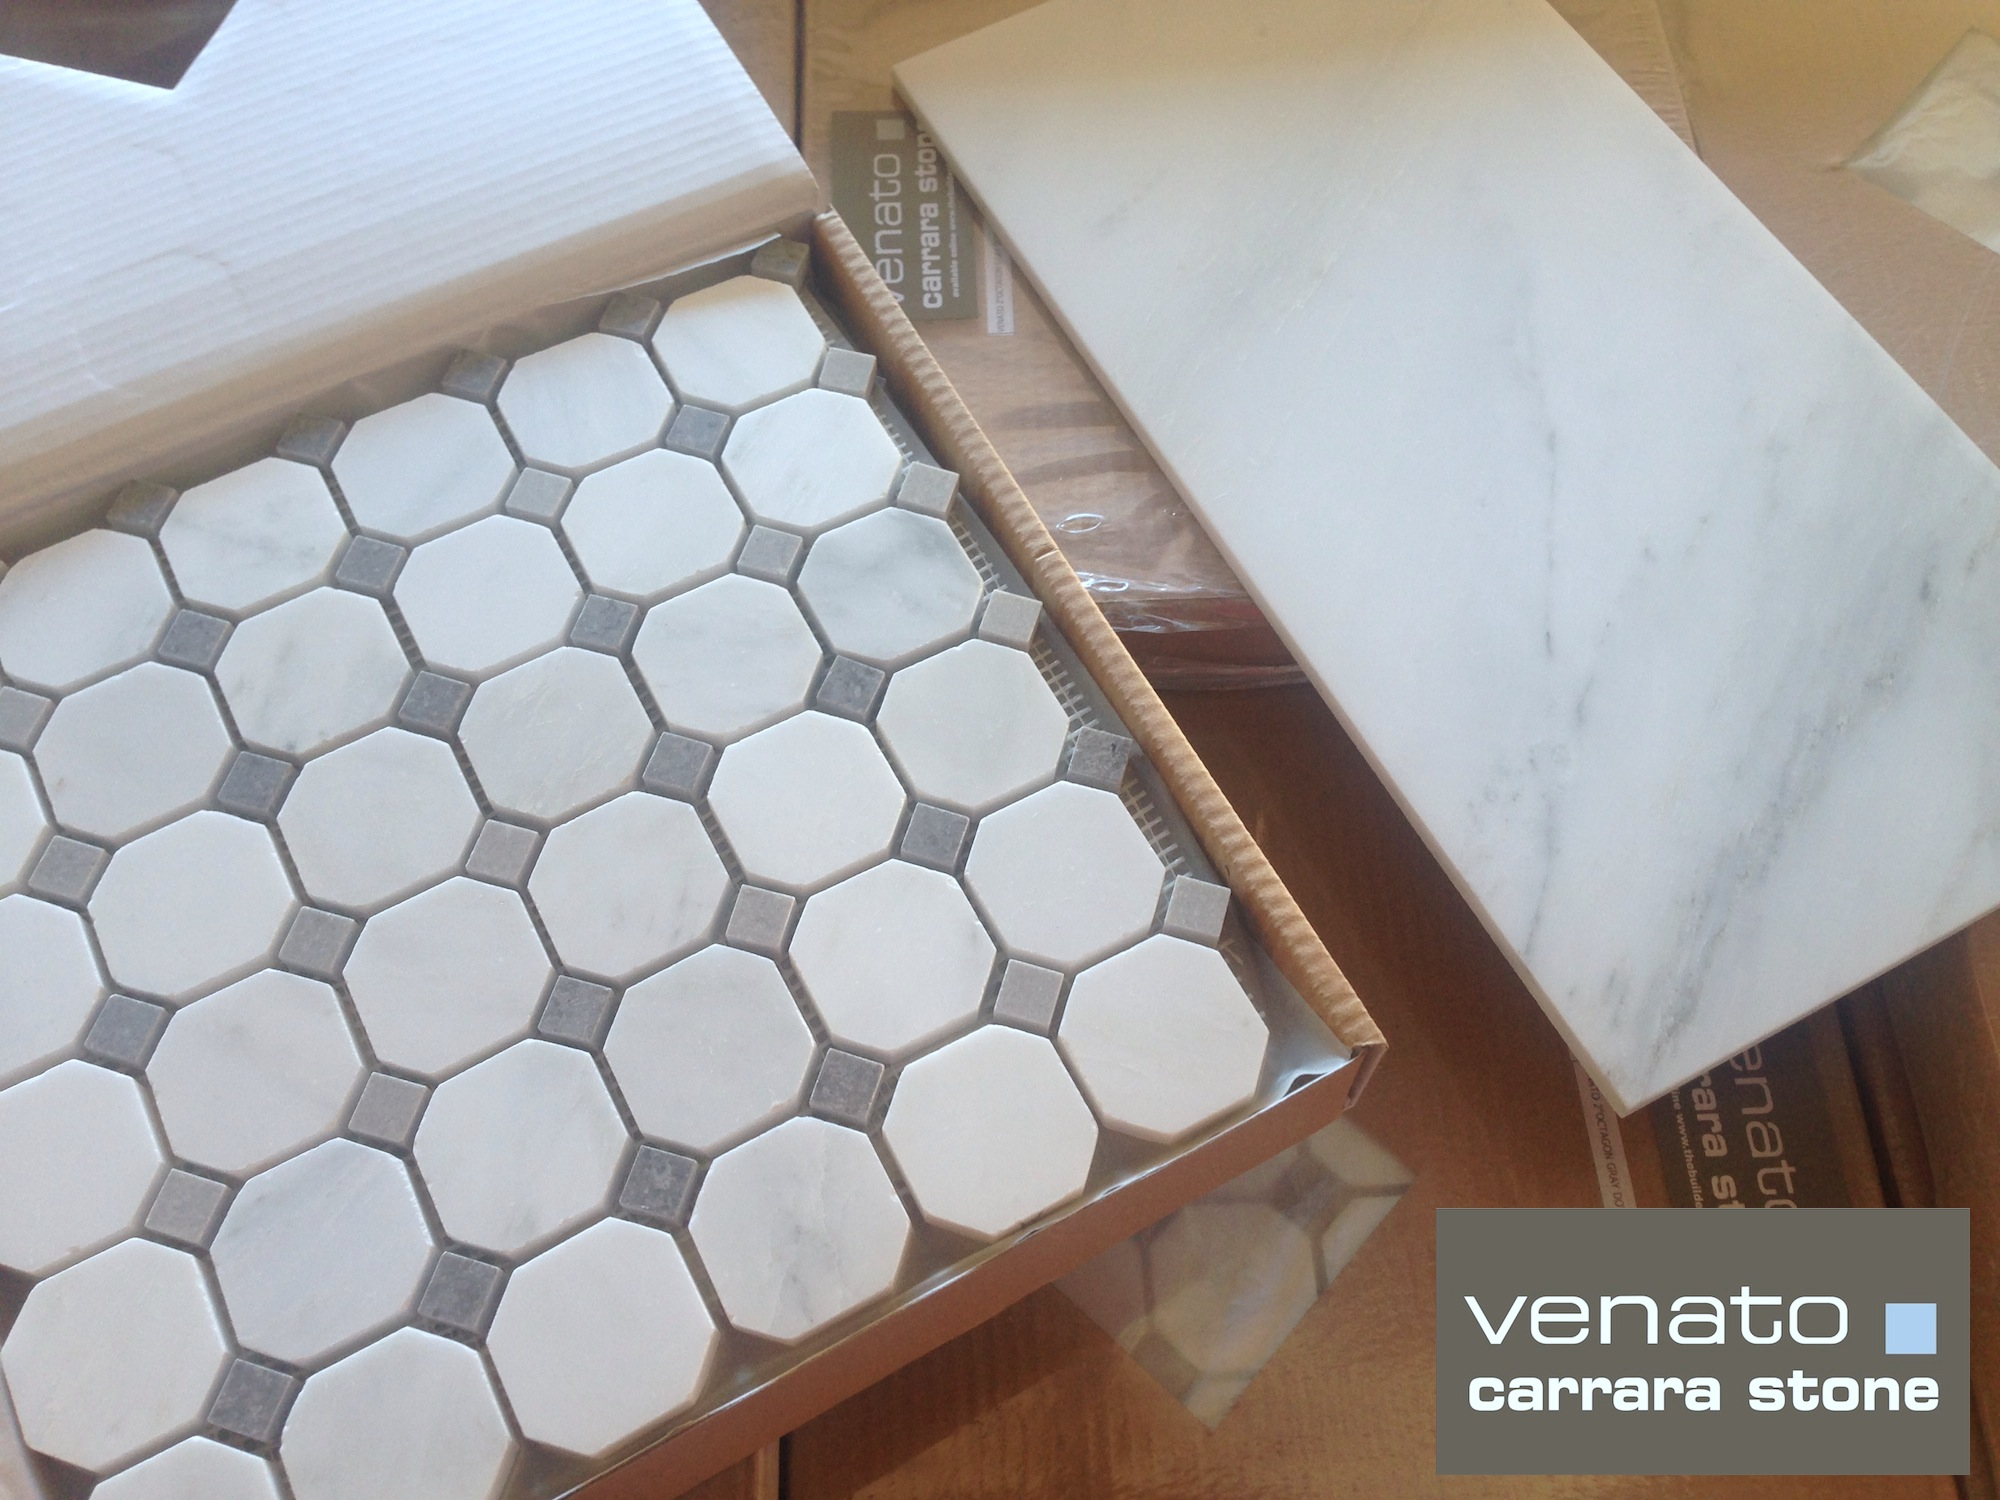 Carrara Venato Gray Dot Mosaic Floor and Wall Tile | the builder ...